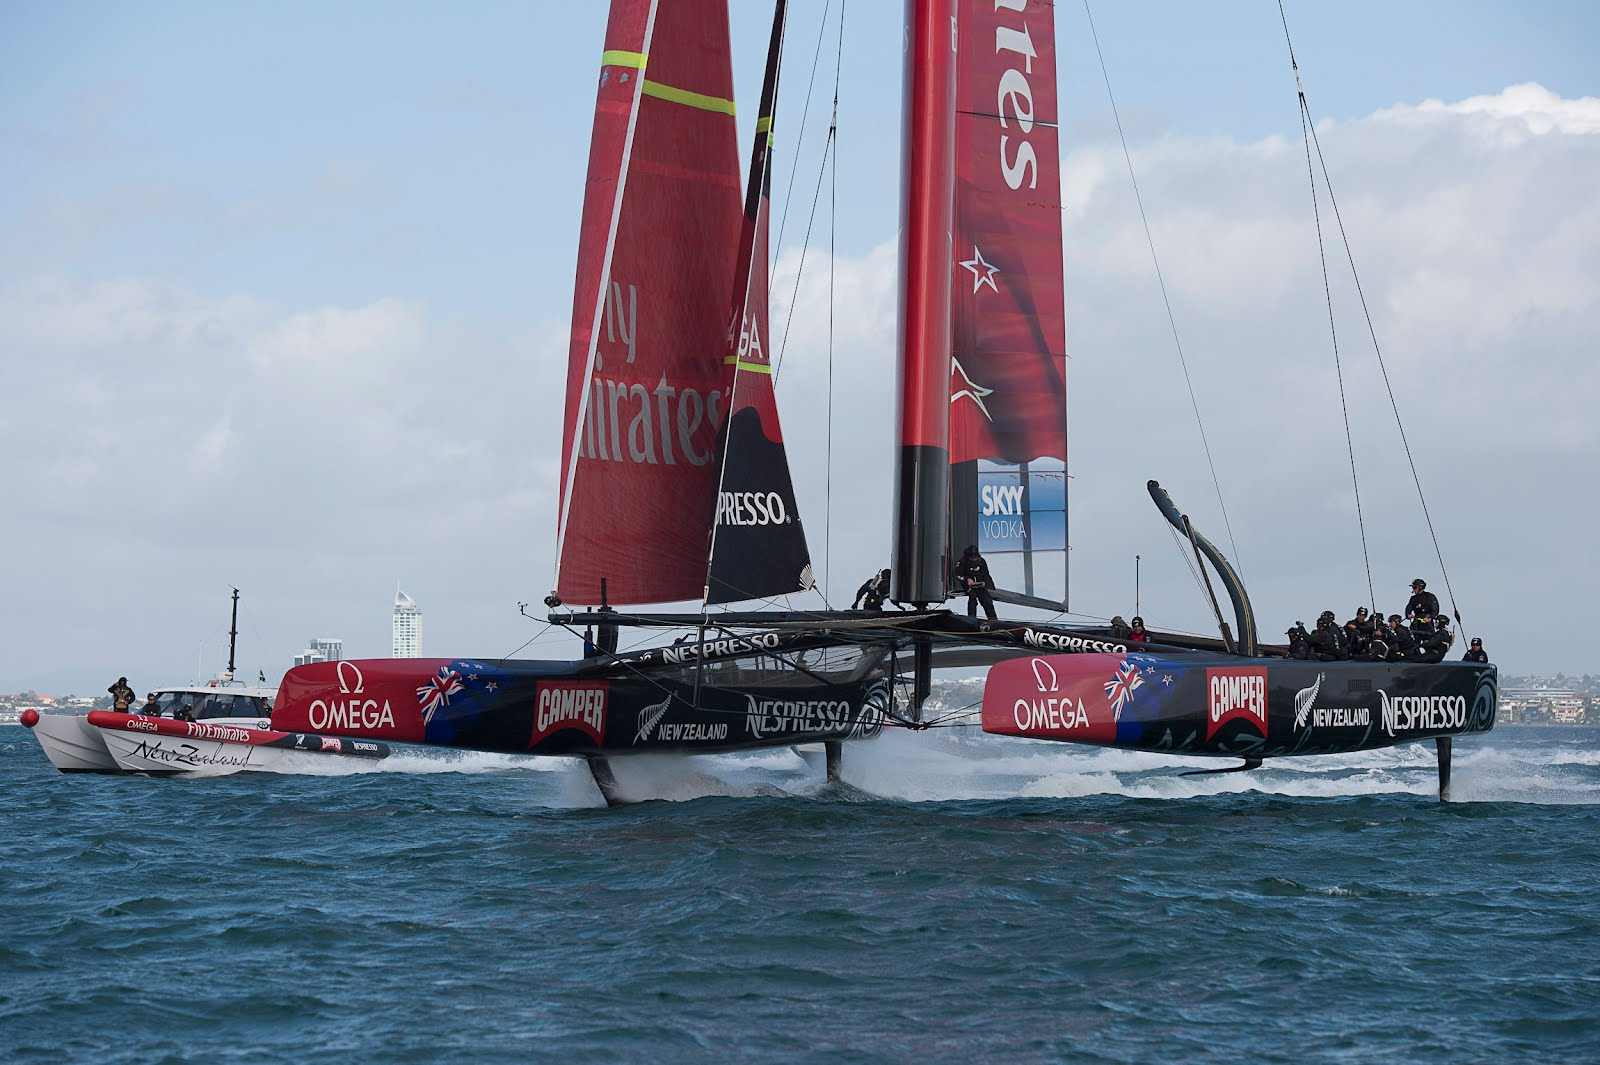 Emirates Team copa américa 2013 New Zealand. Fuente VSail